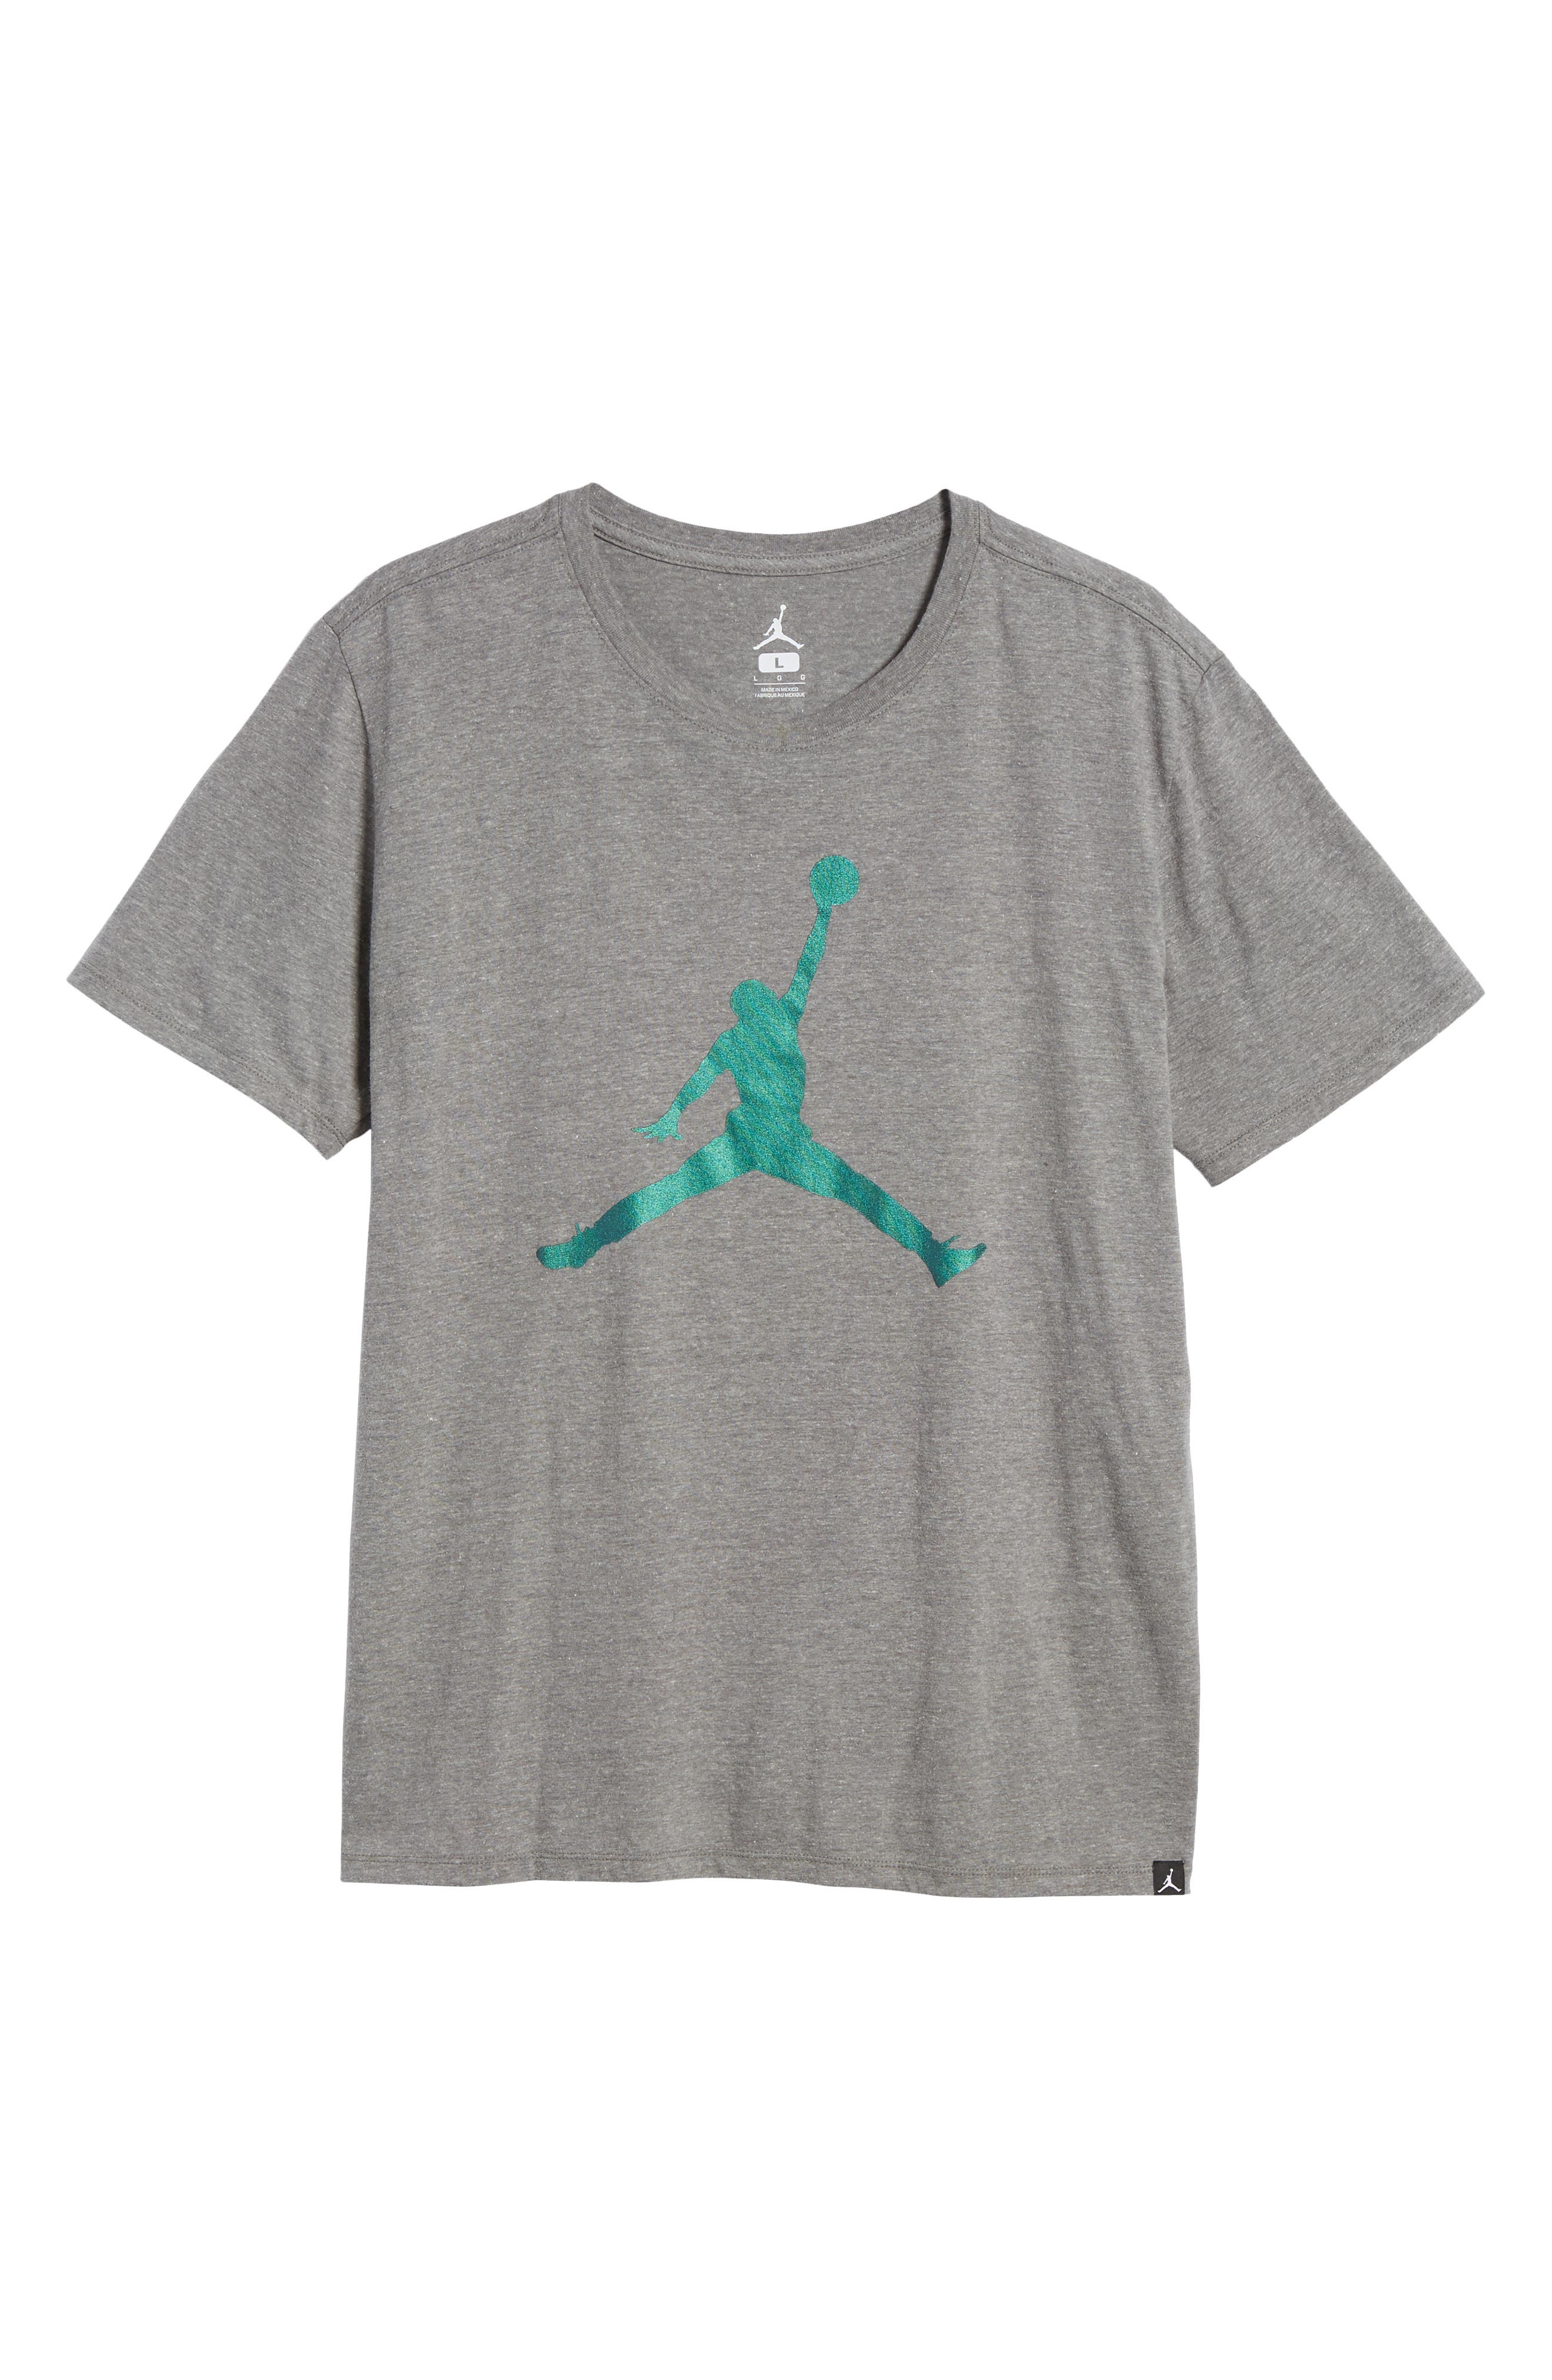 Nike Jumpman Tee,                             Alternate thumbnail 6, color,                             CARBON HEATHER